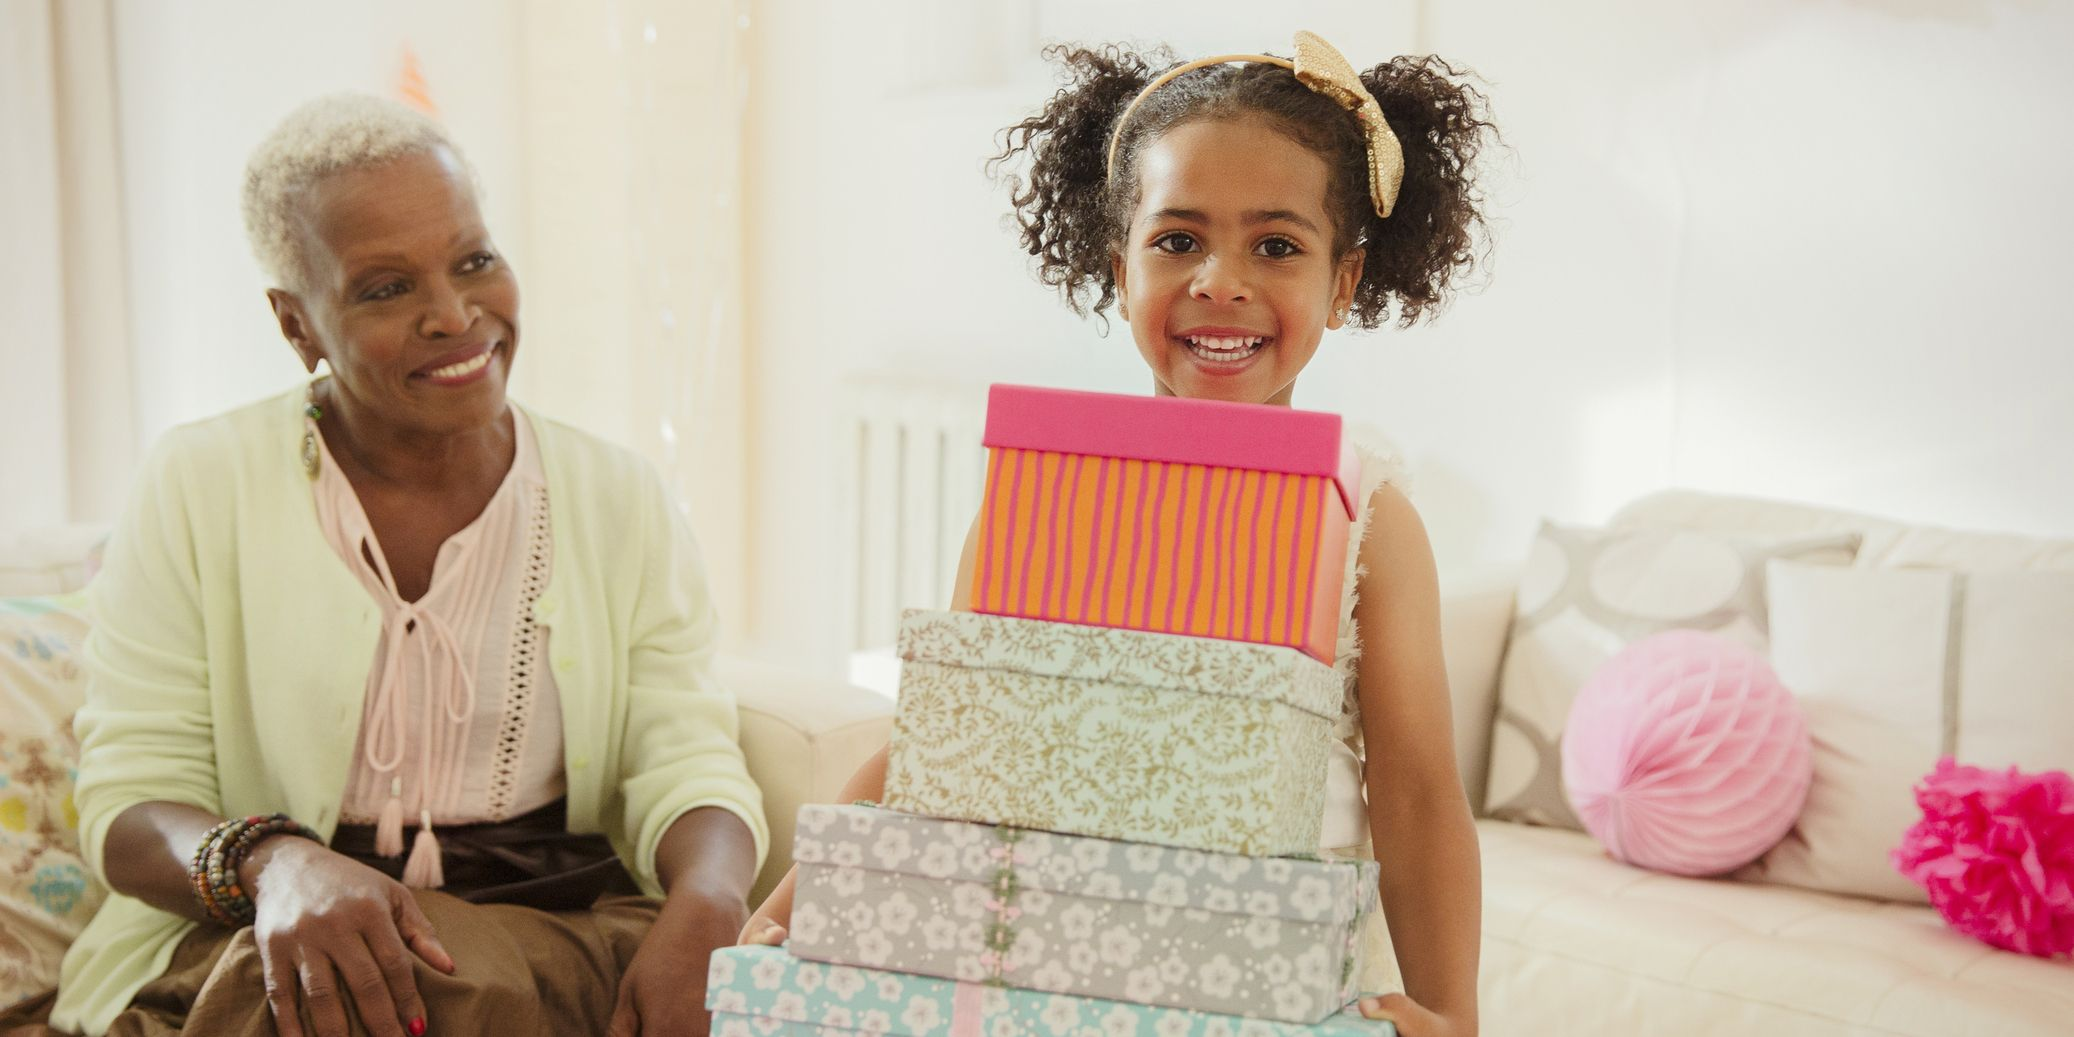 13 Best Gifts Grandparents Can Give Best Gifts For Grandchildren